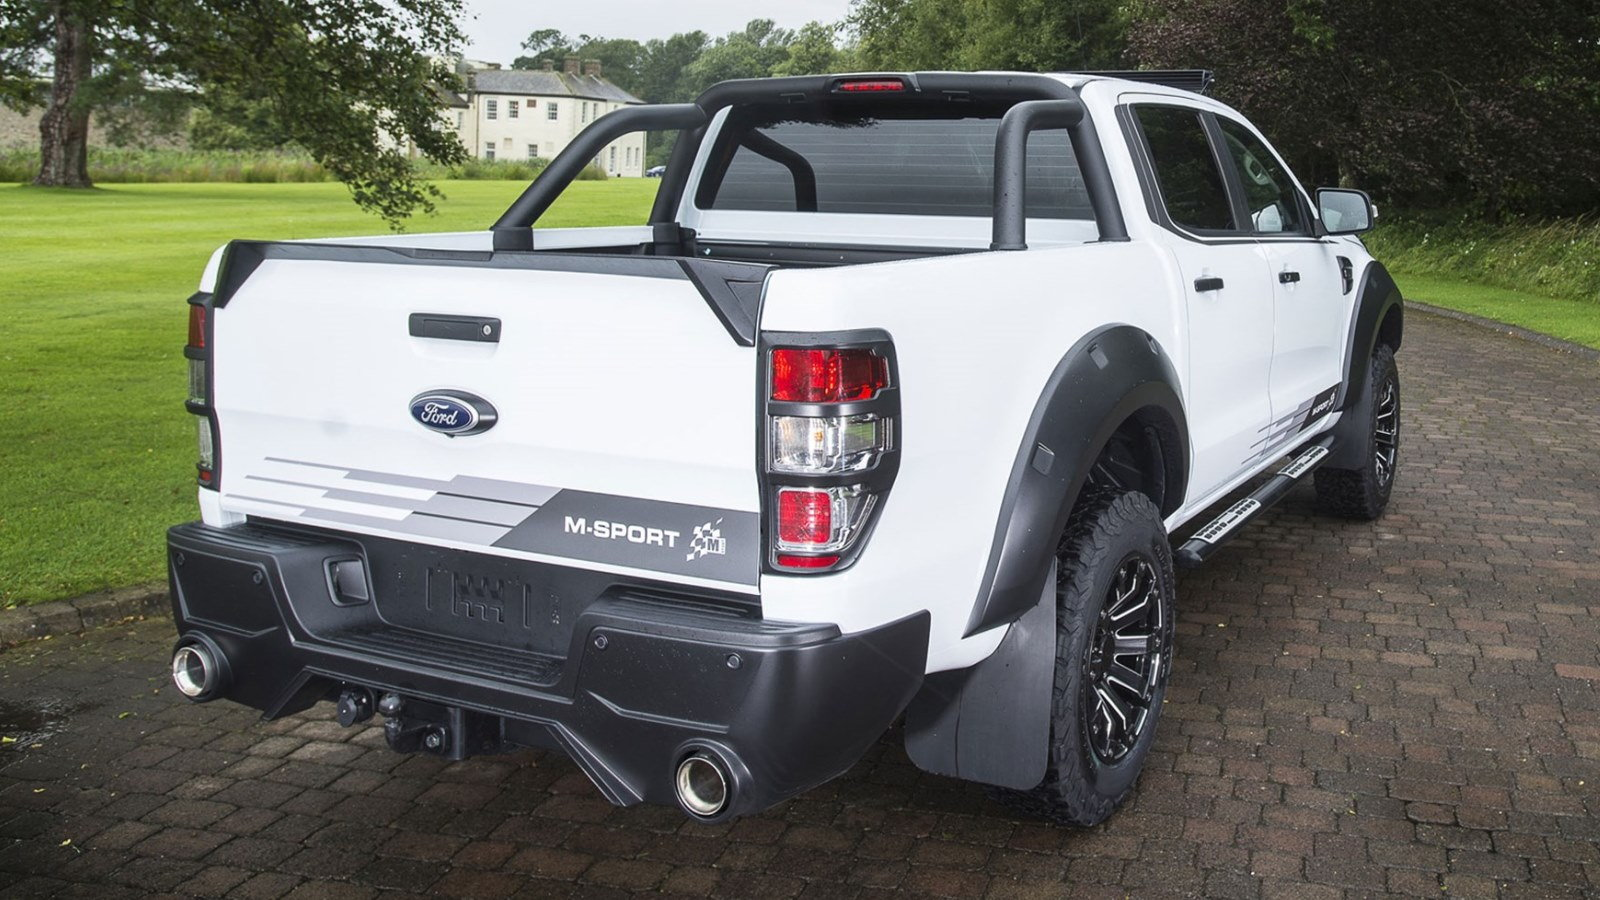 2016 Ranger M-Sport is a Mini-Raptor